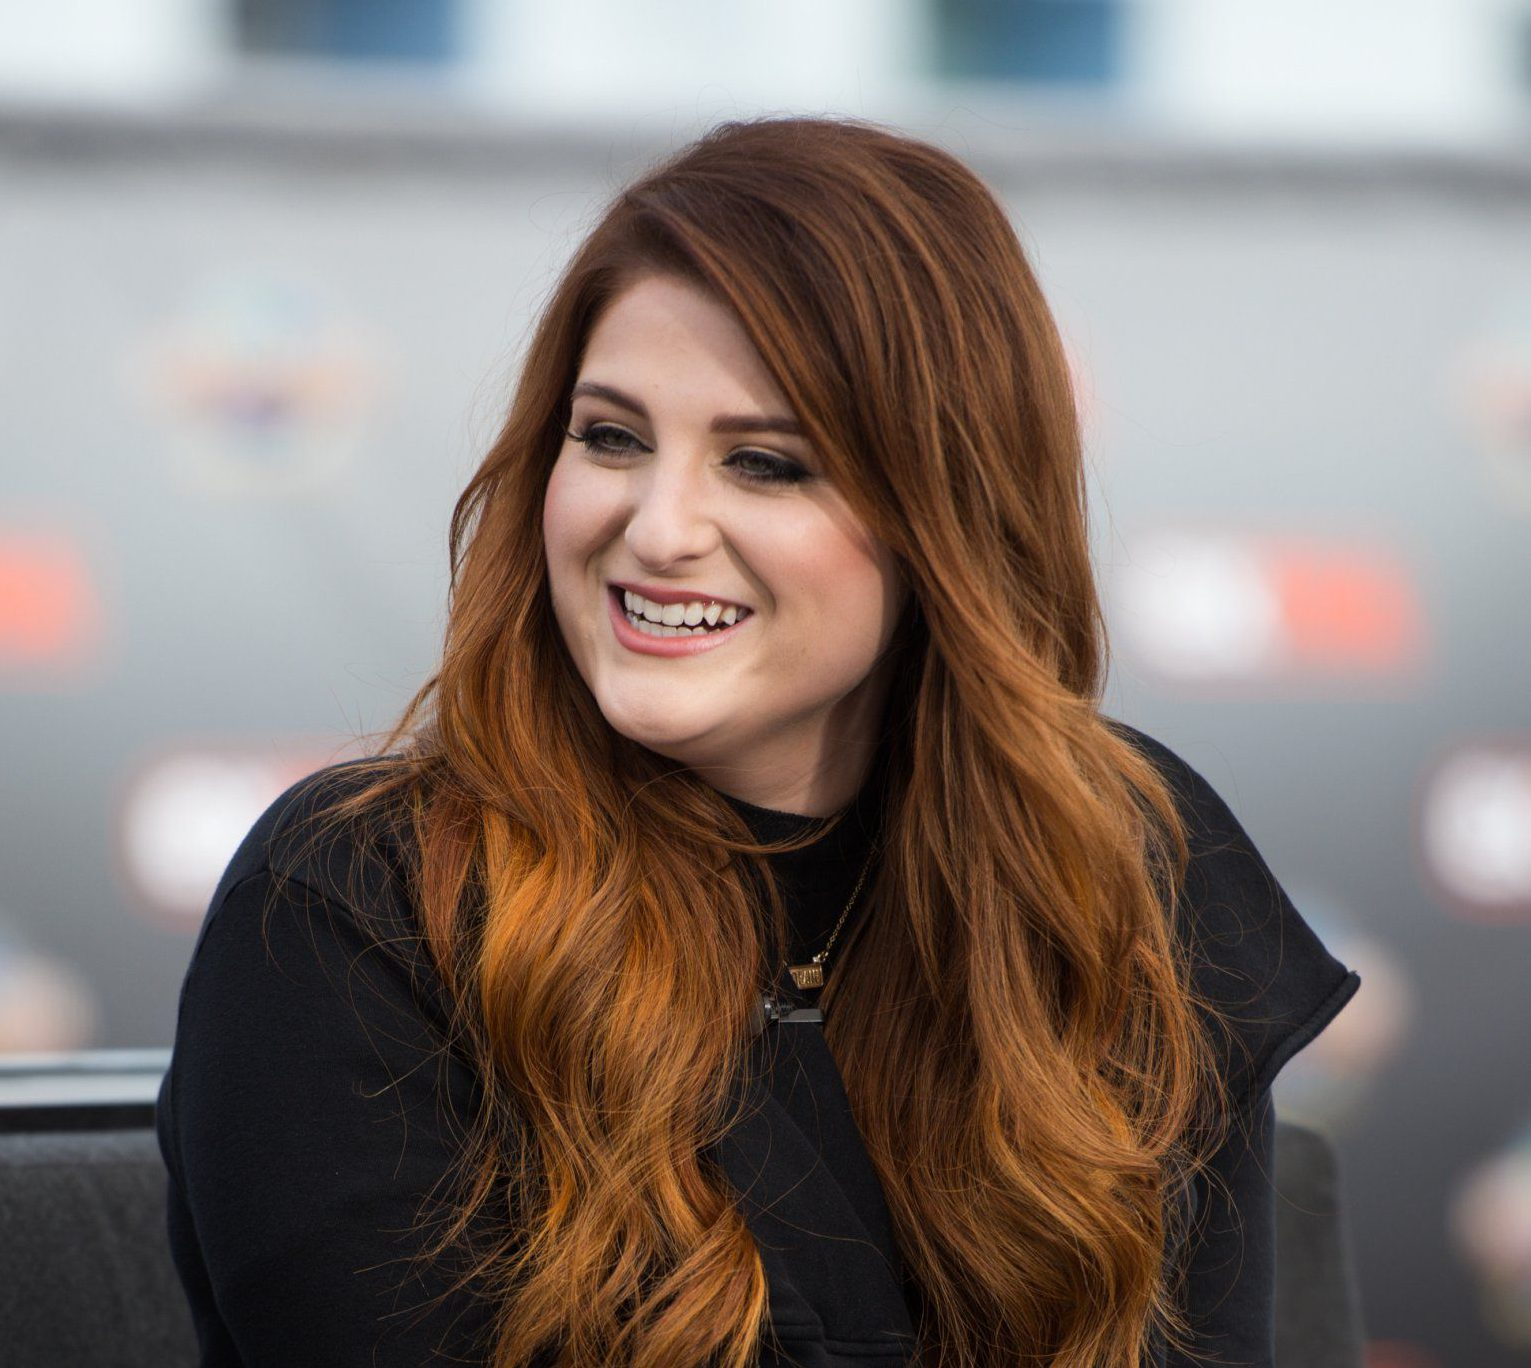 Meghan Trainor pulls music video Me Too because her waist was Photoshopped